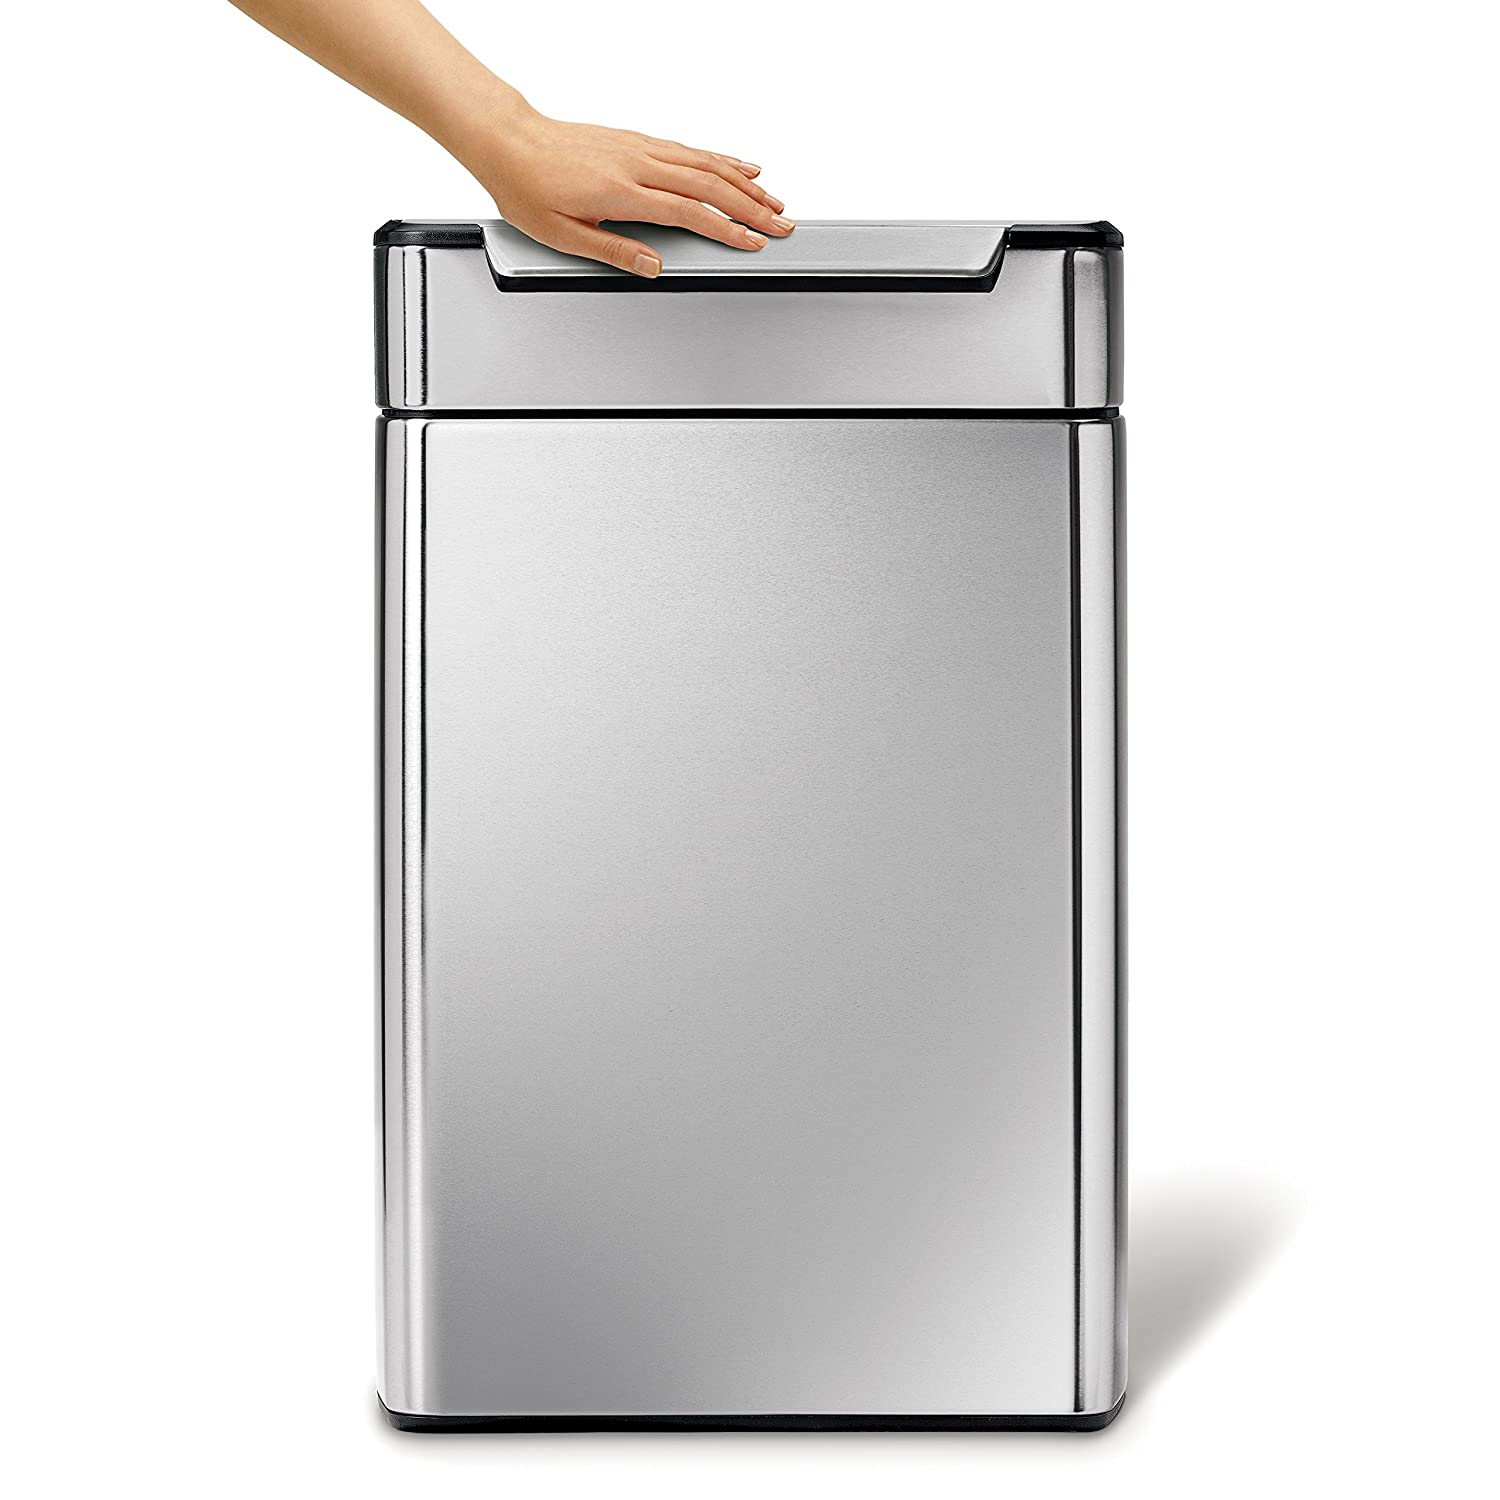 Simplehuman Rectangular Touch Bar Trash Can Stainless